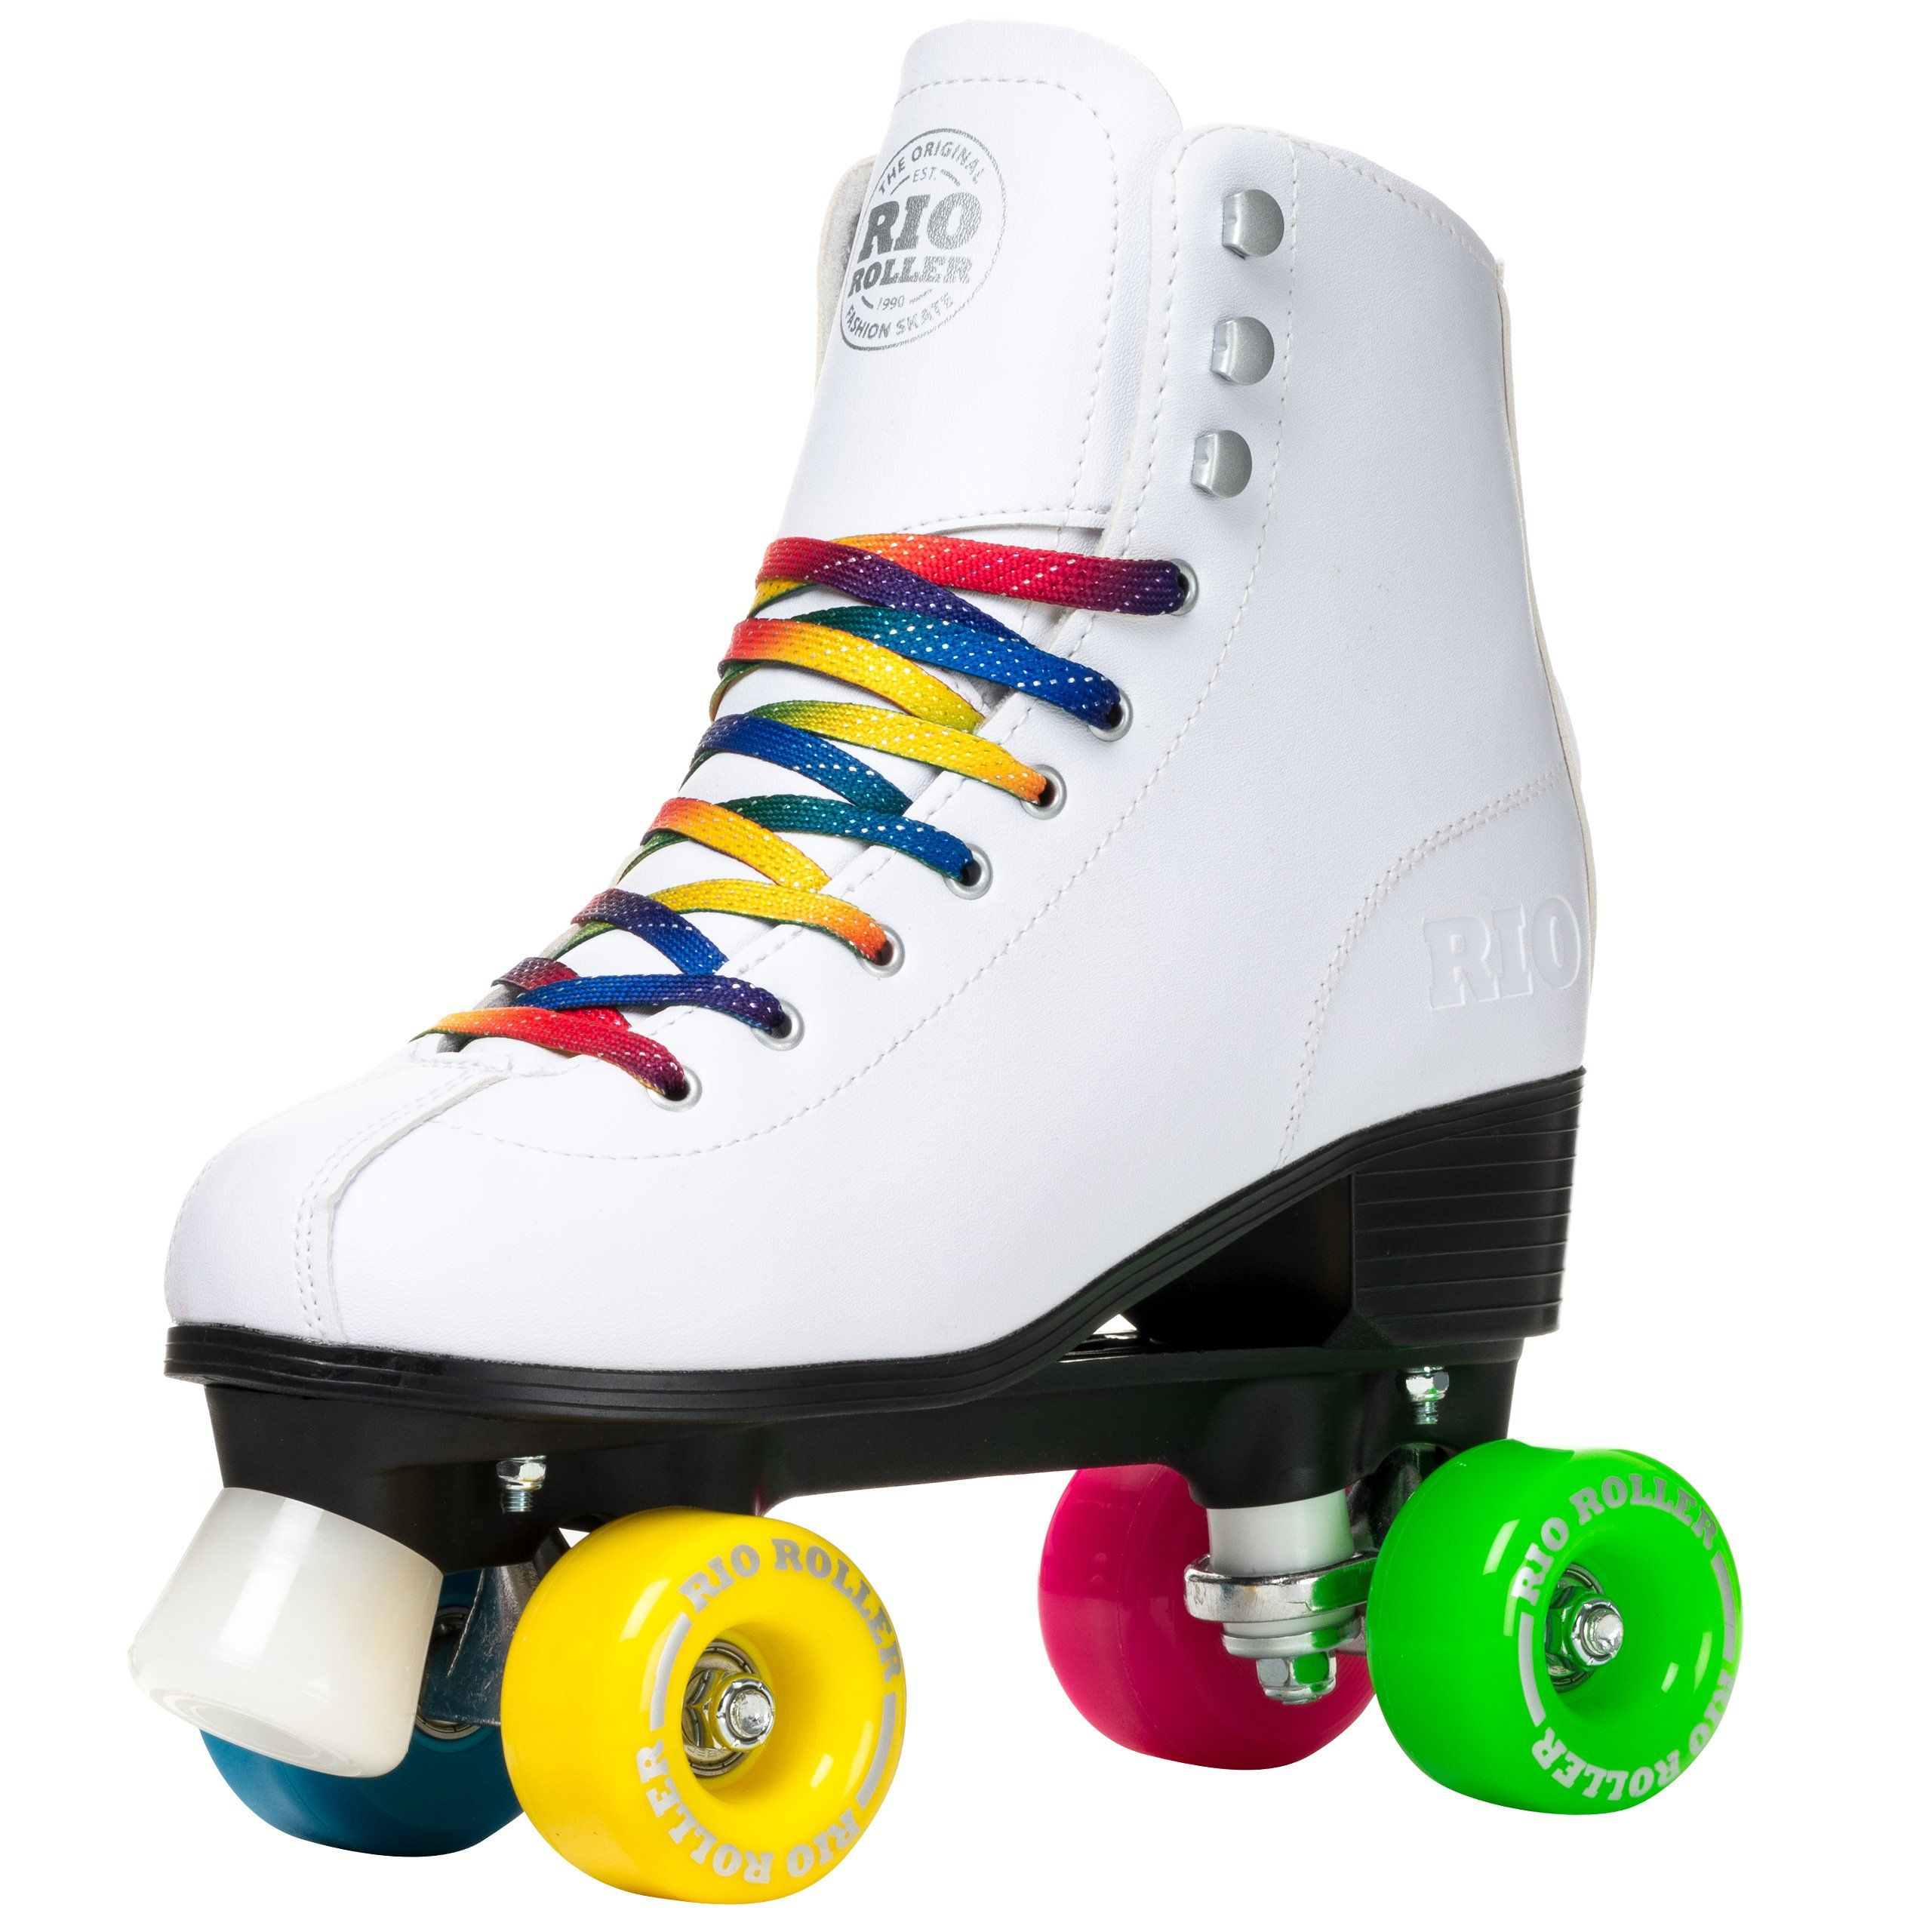 Roller skating rink queen anne - Rio Roller Figure Quads White 7uk Awesome Products Selected By Anna Churchill